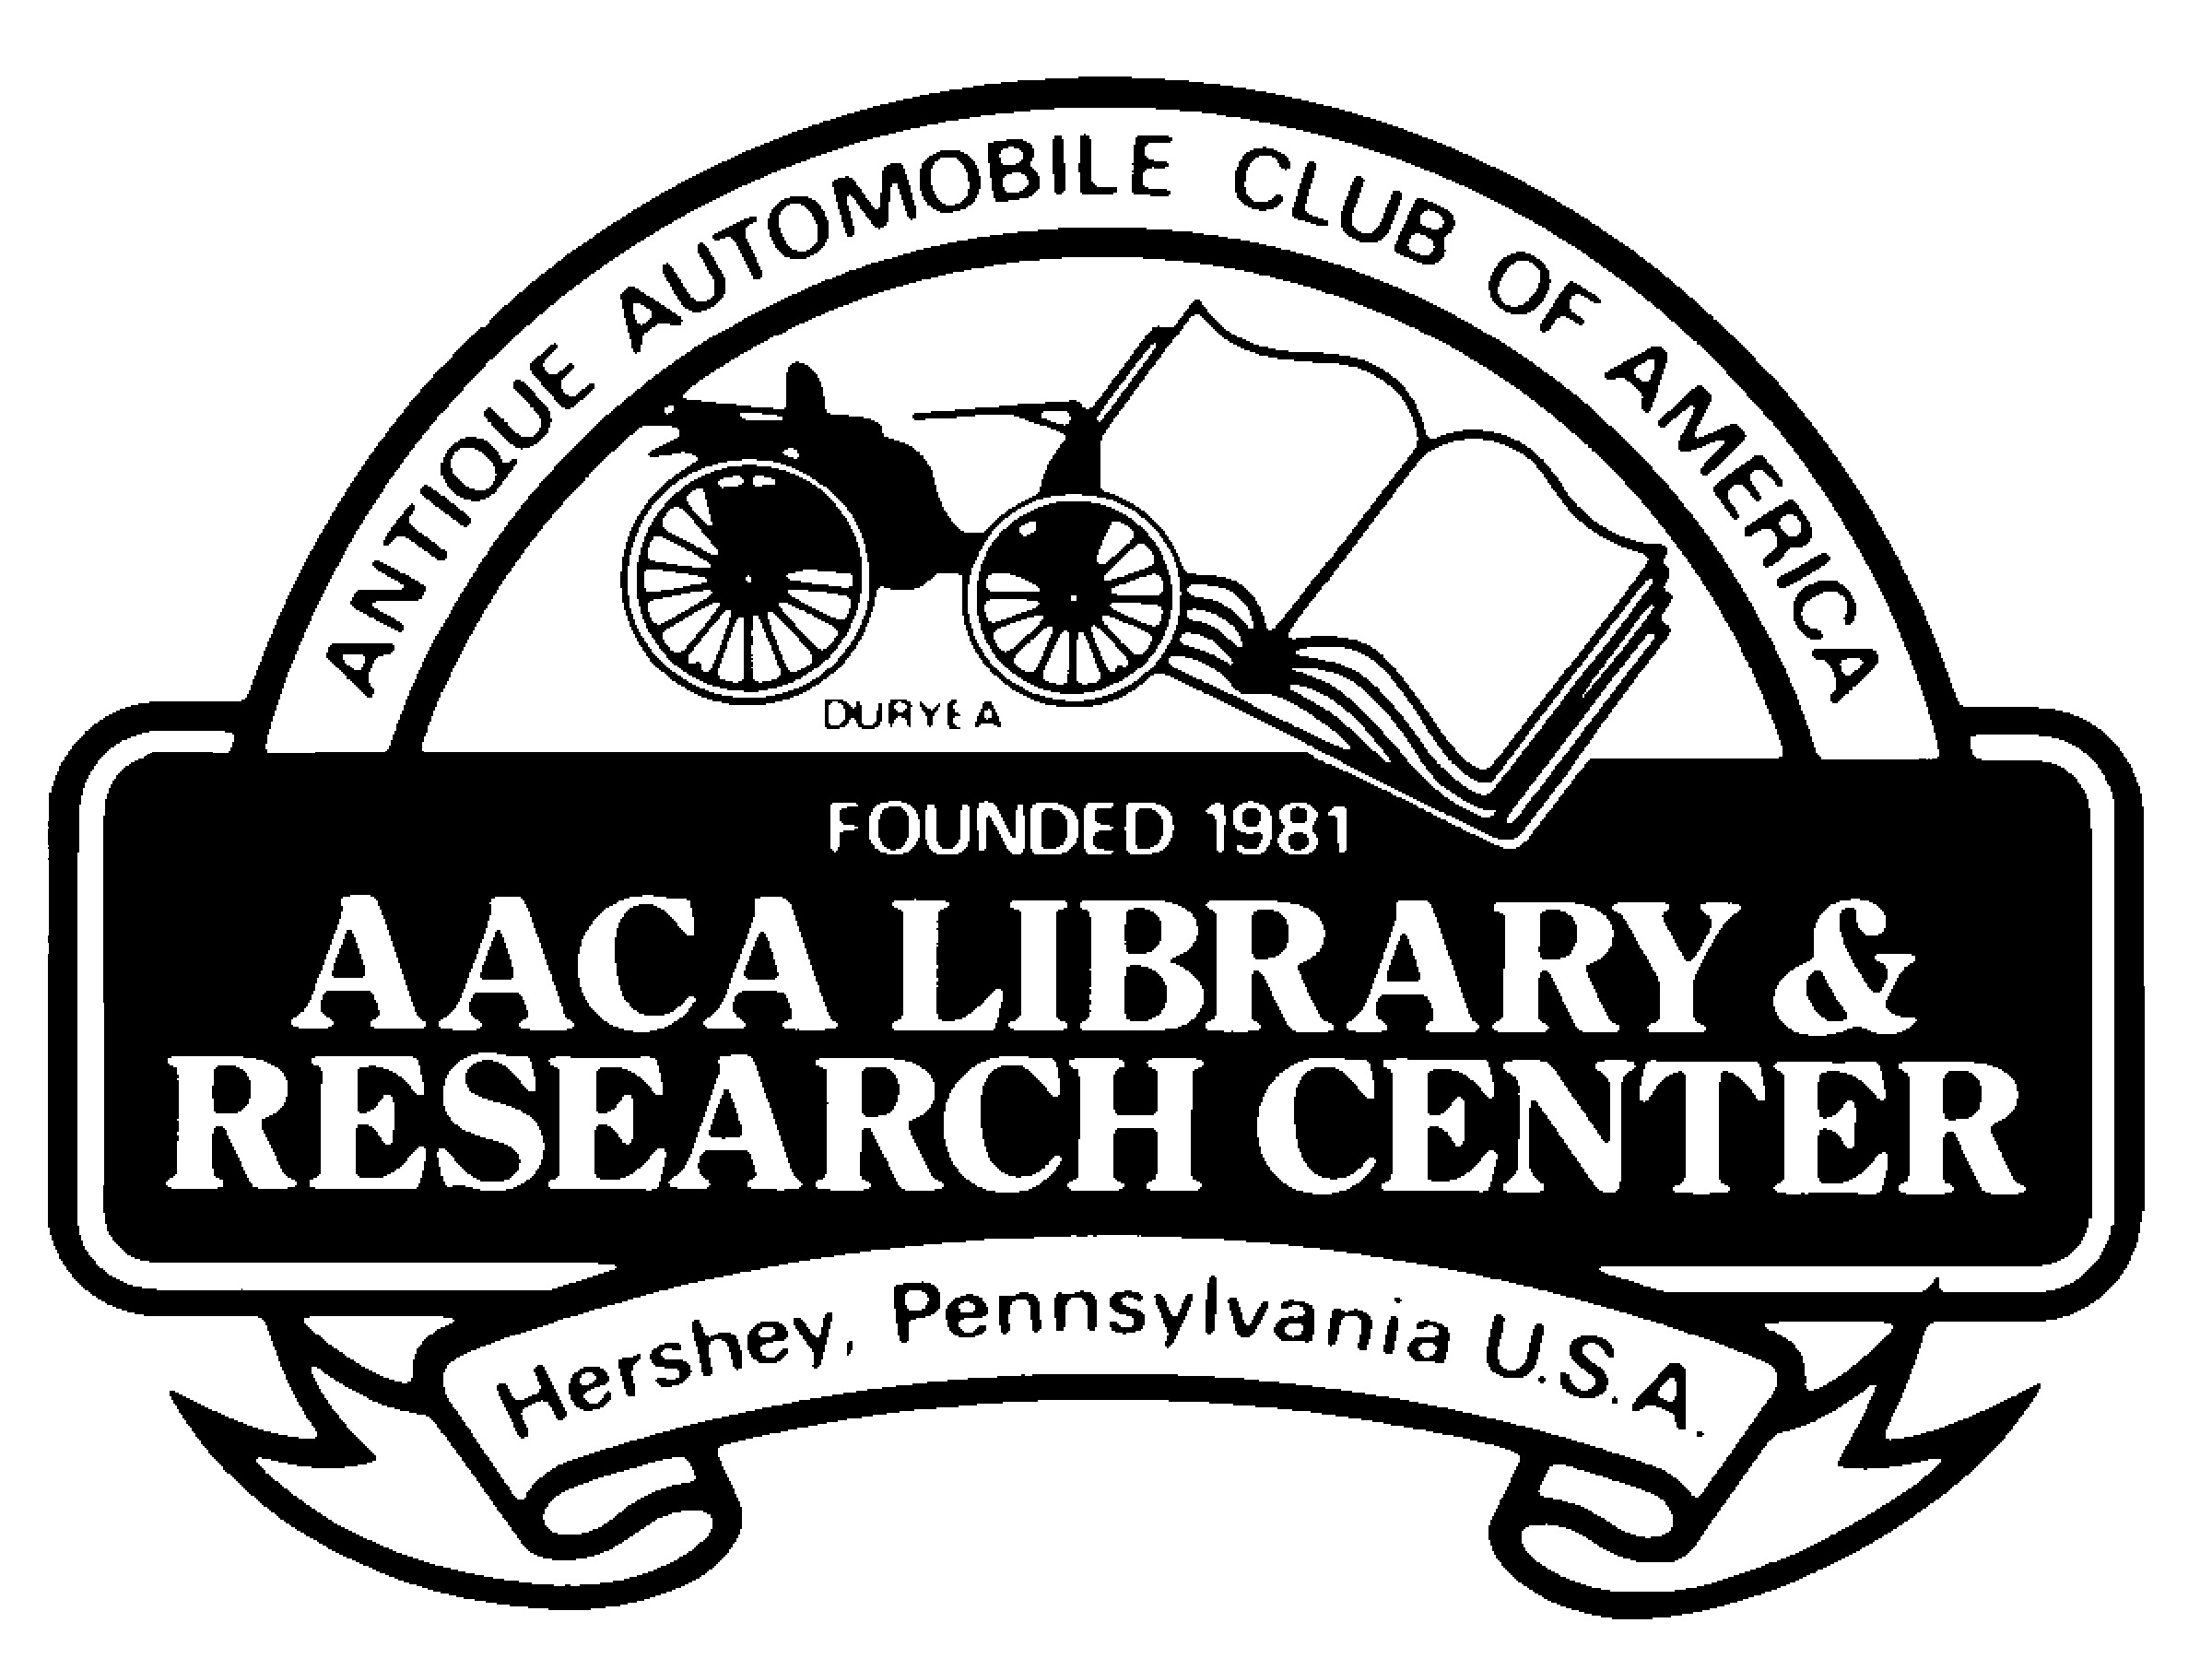 www.aacalibrary.org